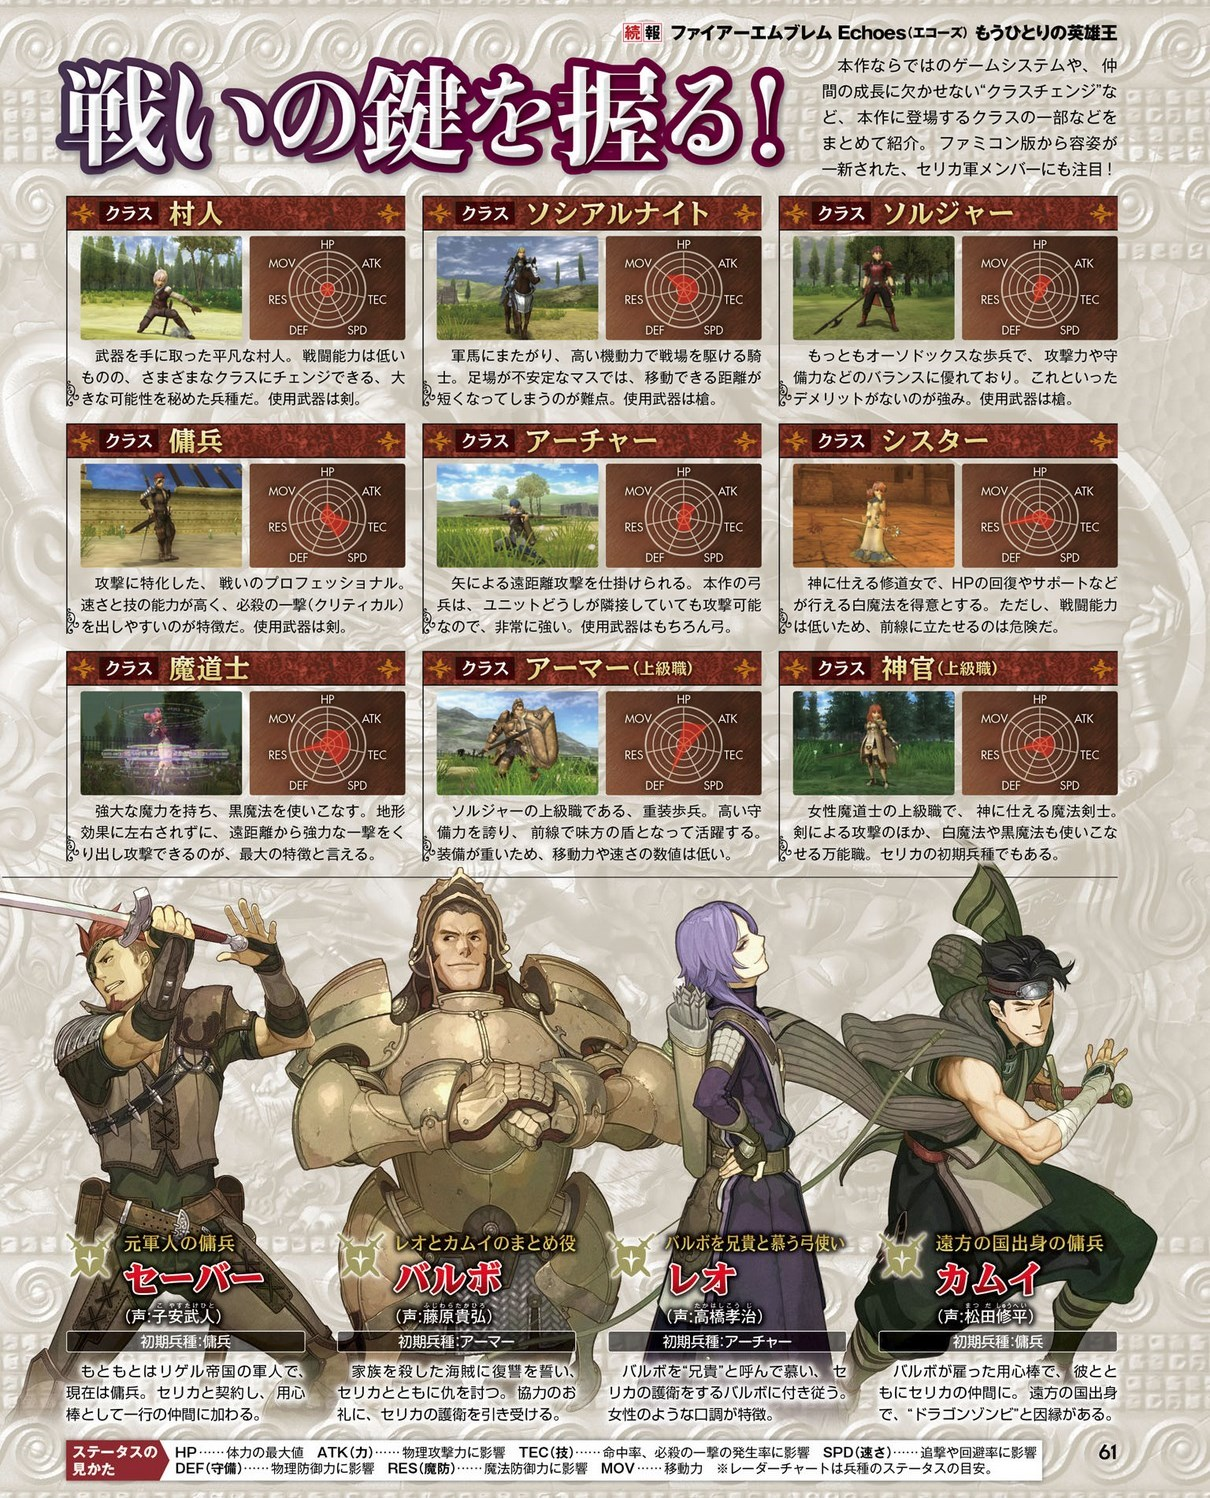 Fire Emblem Echoes: more details on Mila's Gear, new